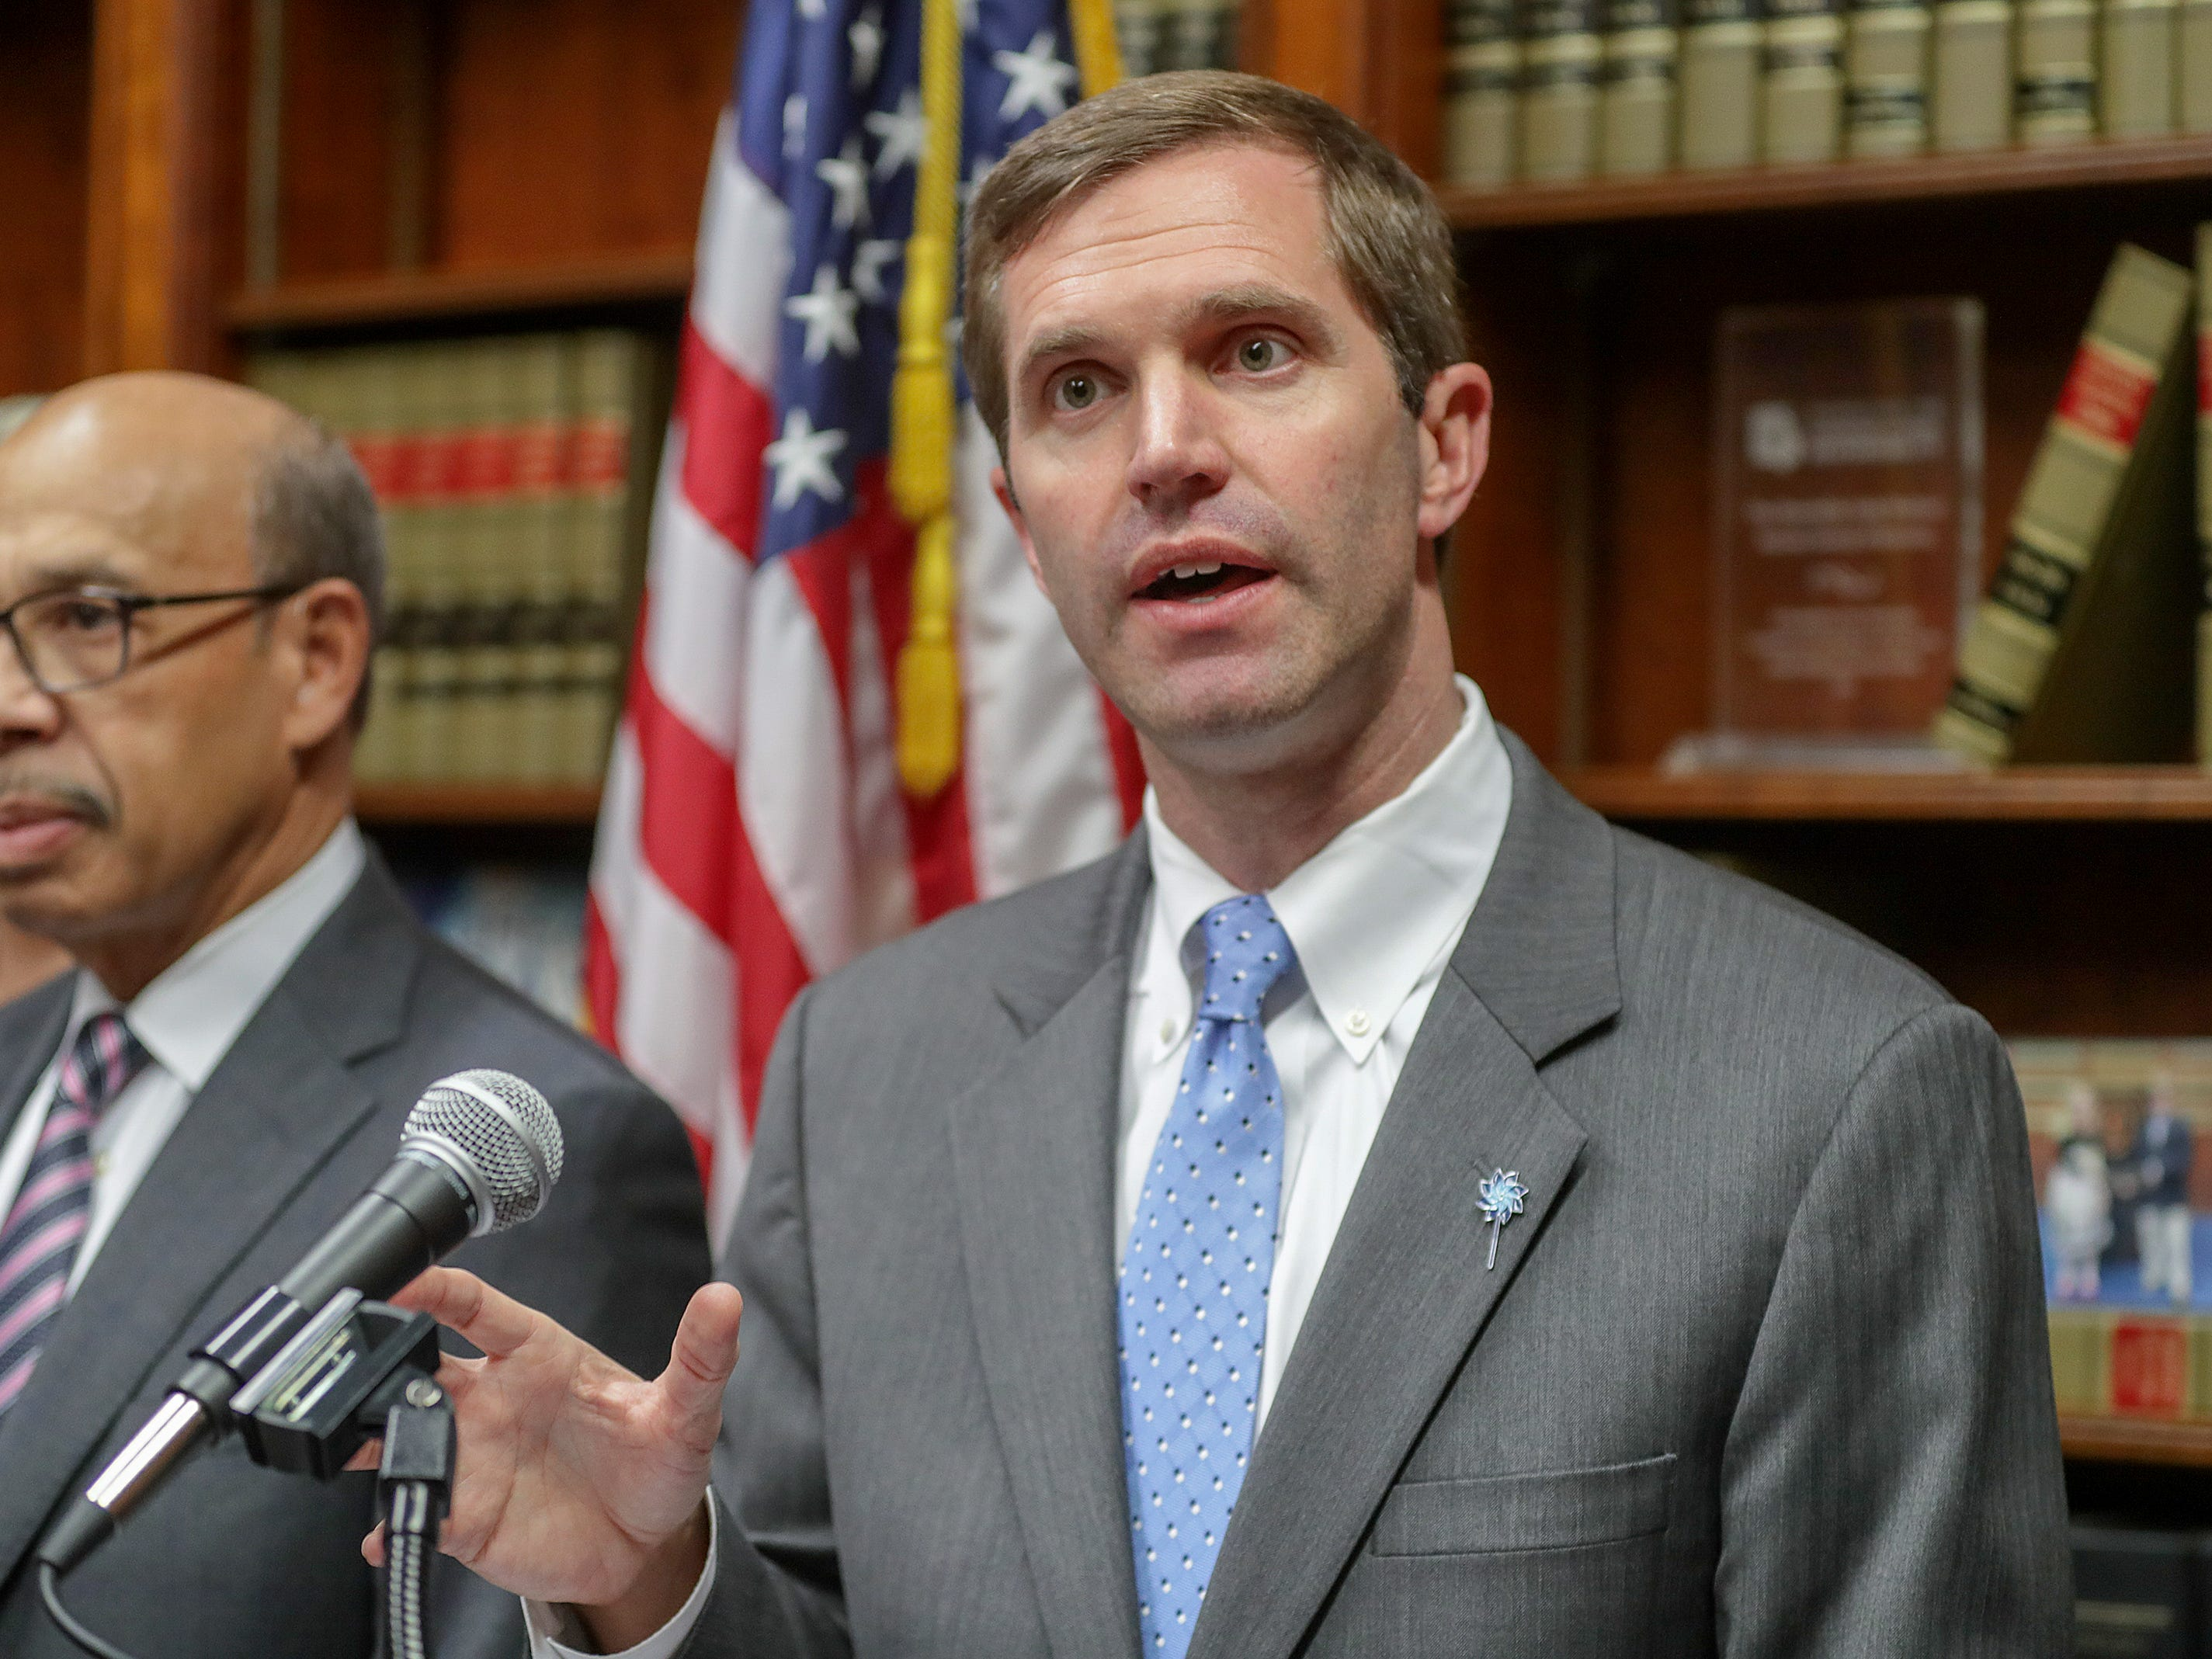 Kentucky Attorney General Andy Beshear speaks with the media after a Kentucky Supreme Court ruling that overturned Governor Matt Bevin's pension reform bill.December 13, 2018